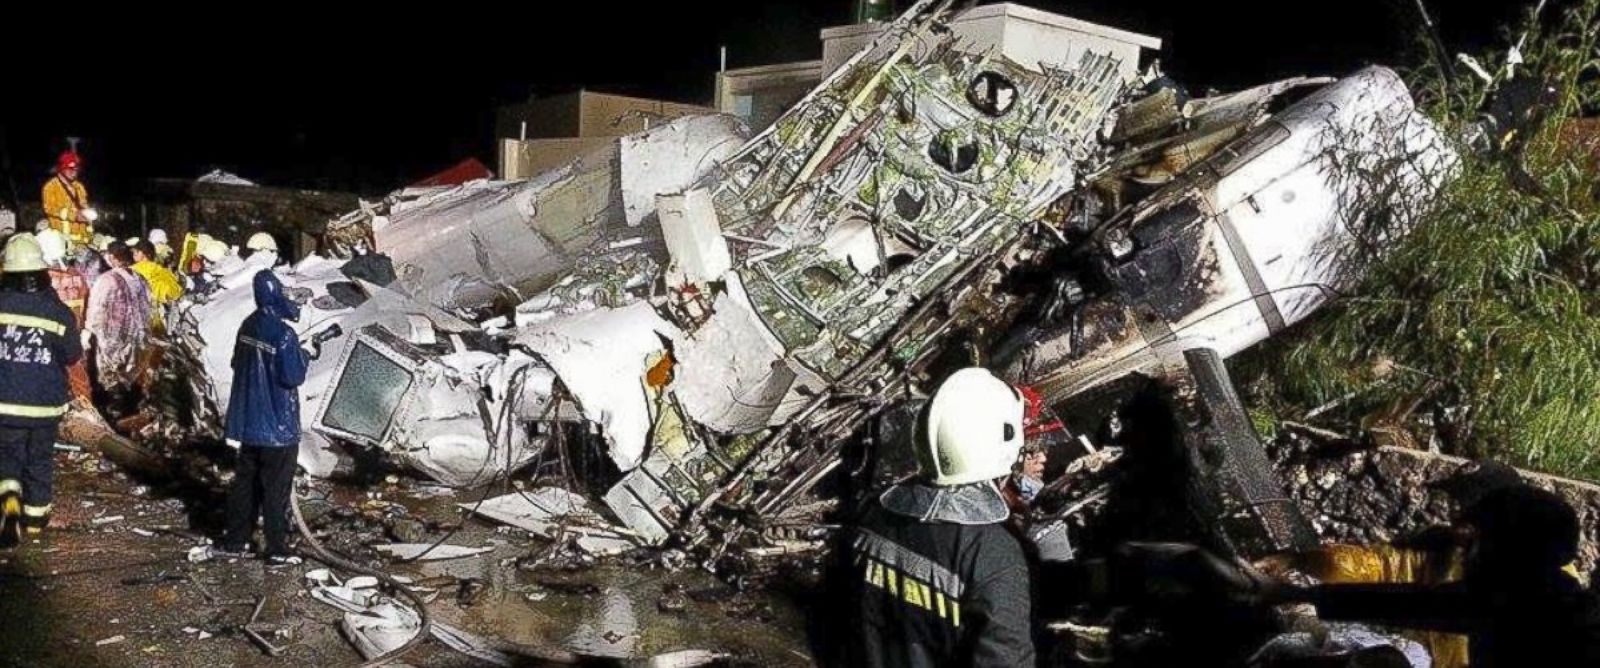 PHOTO: Rescue workers survey the wreckage of TransAsia Airways flight GE222 which crashed while attempting to land in stormy weather on the Taiwanese island of Penghu, July 23, 2014.